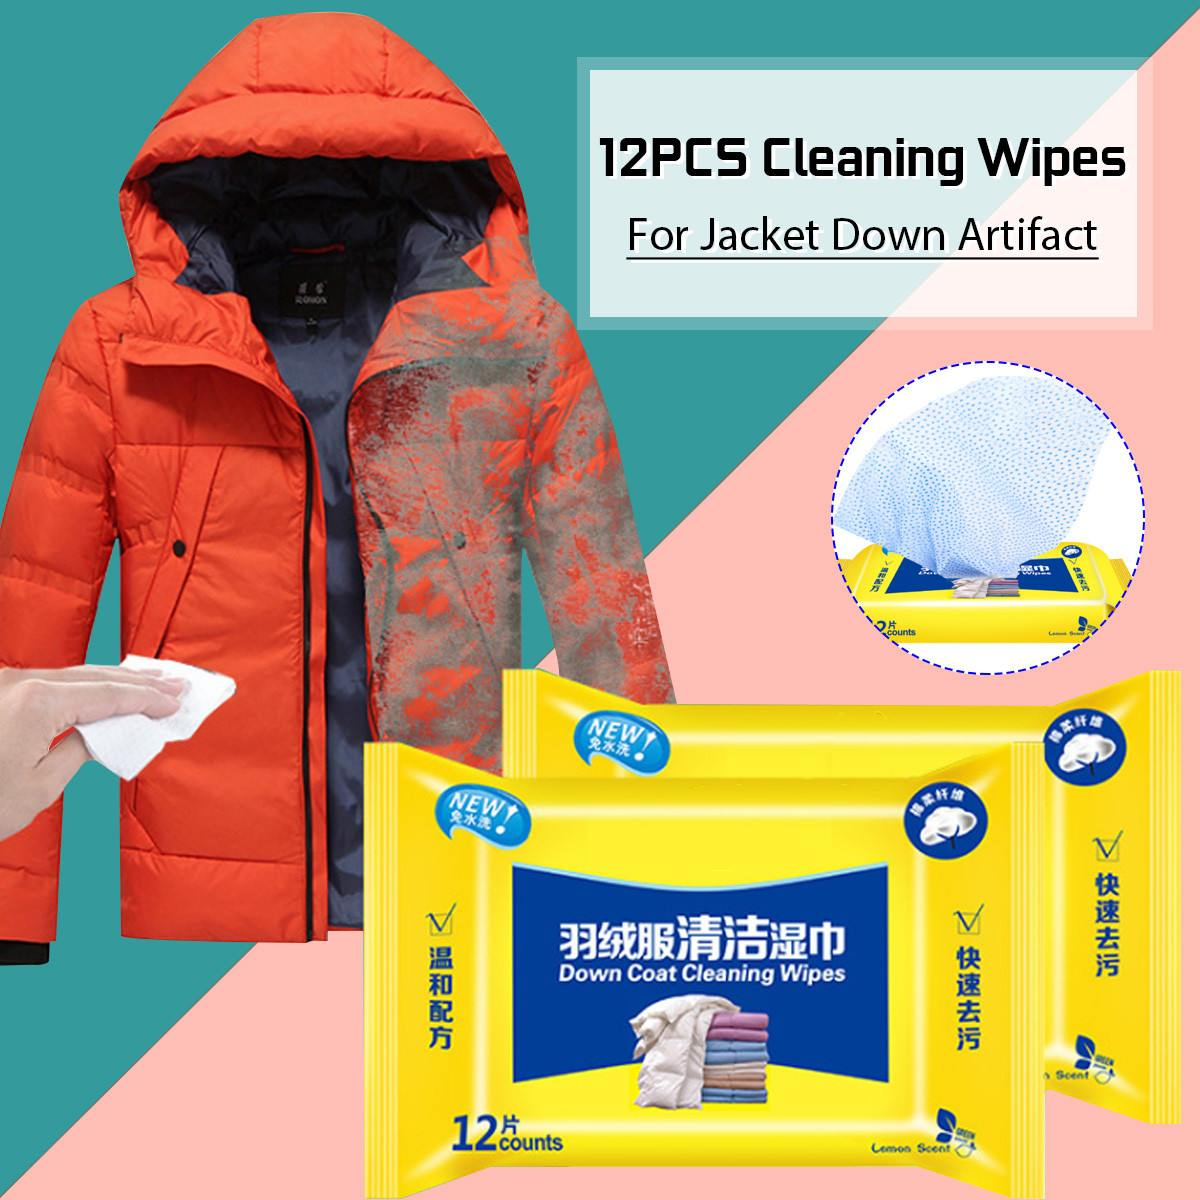 12pcs Multifunction Down Jacket Cleaning Wipes Artifact Wet Wipe Disposable Disinfection Swap Pad Travel Portable Cleaning Care